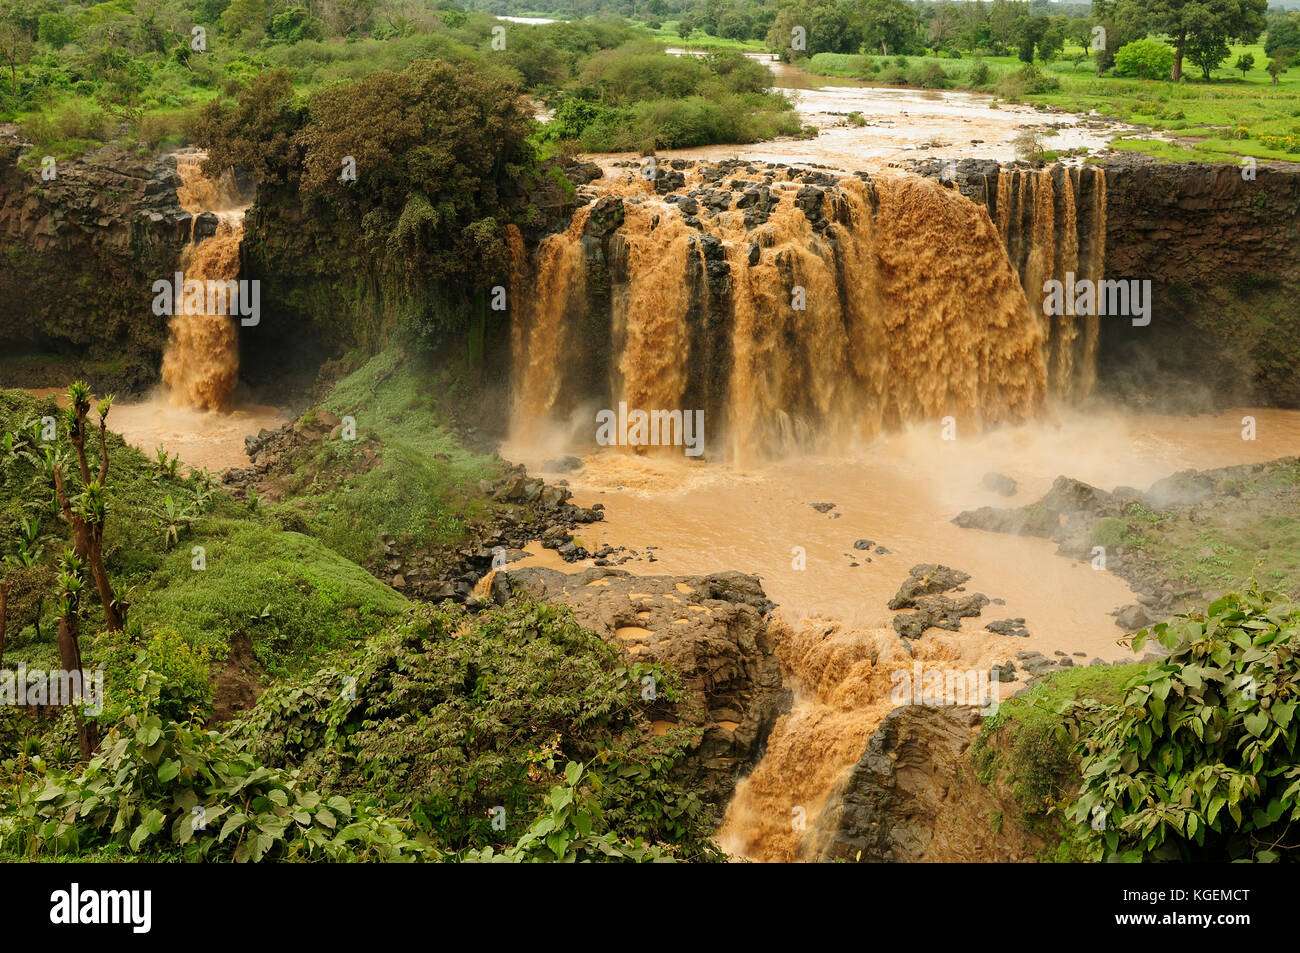 Waterfall on the Blue Nile flowing from the Tana lake in Ethiopia - Stock Image